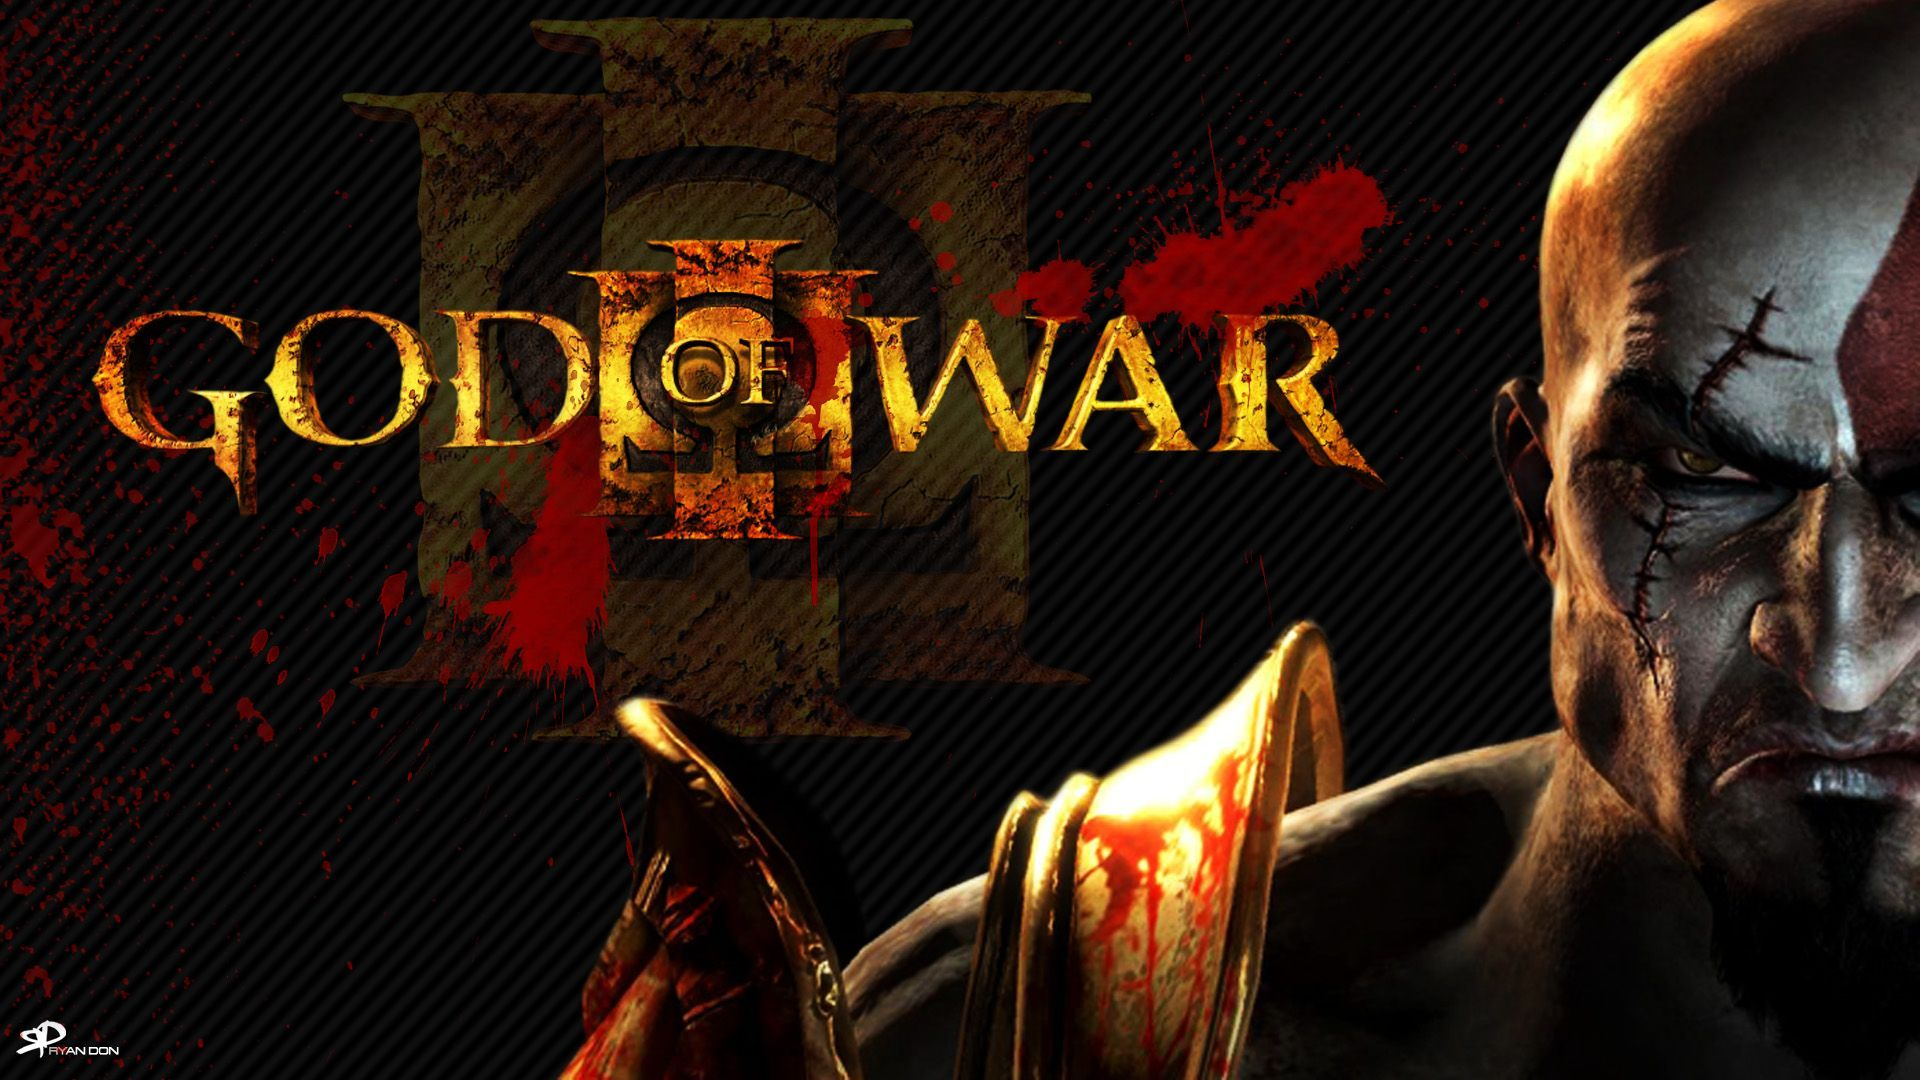 HD Wallpapers Of God Of War